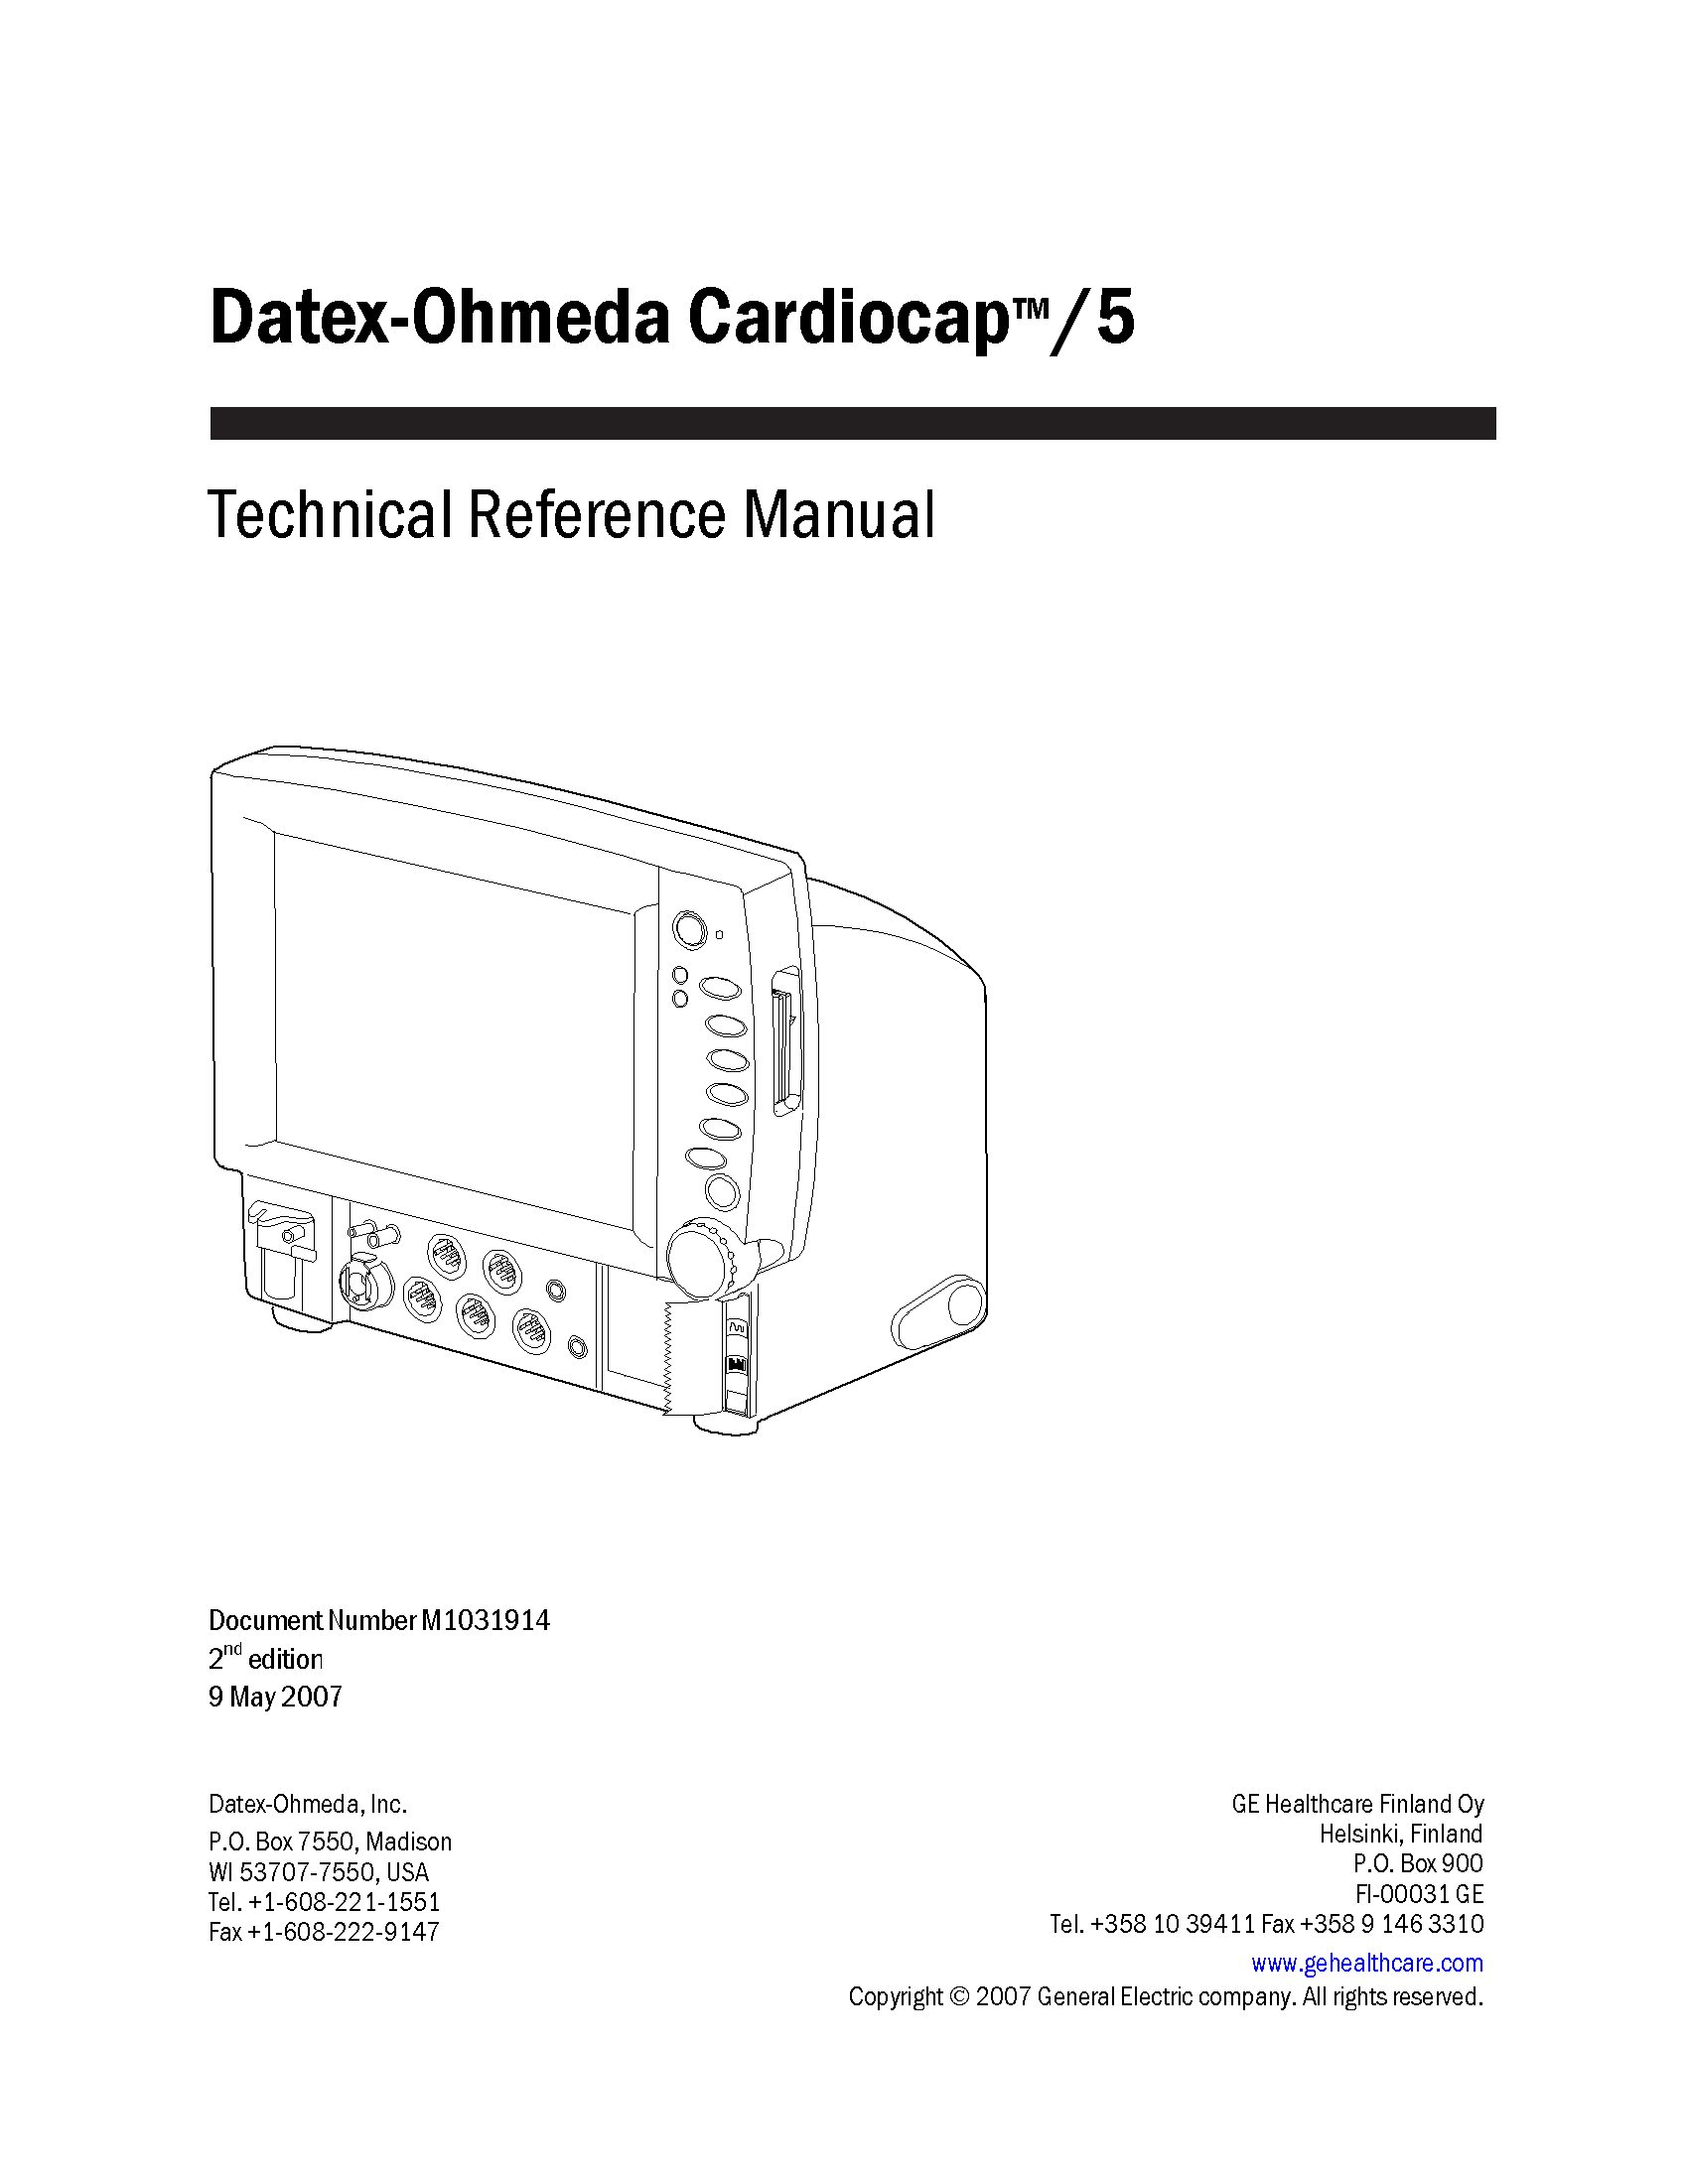 Datex-Ohmeda Cardiocap 5 Service manual (2007)